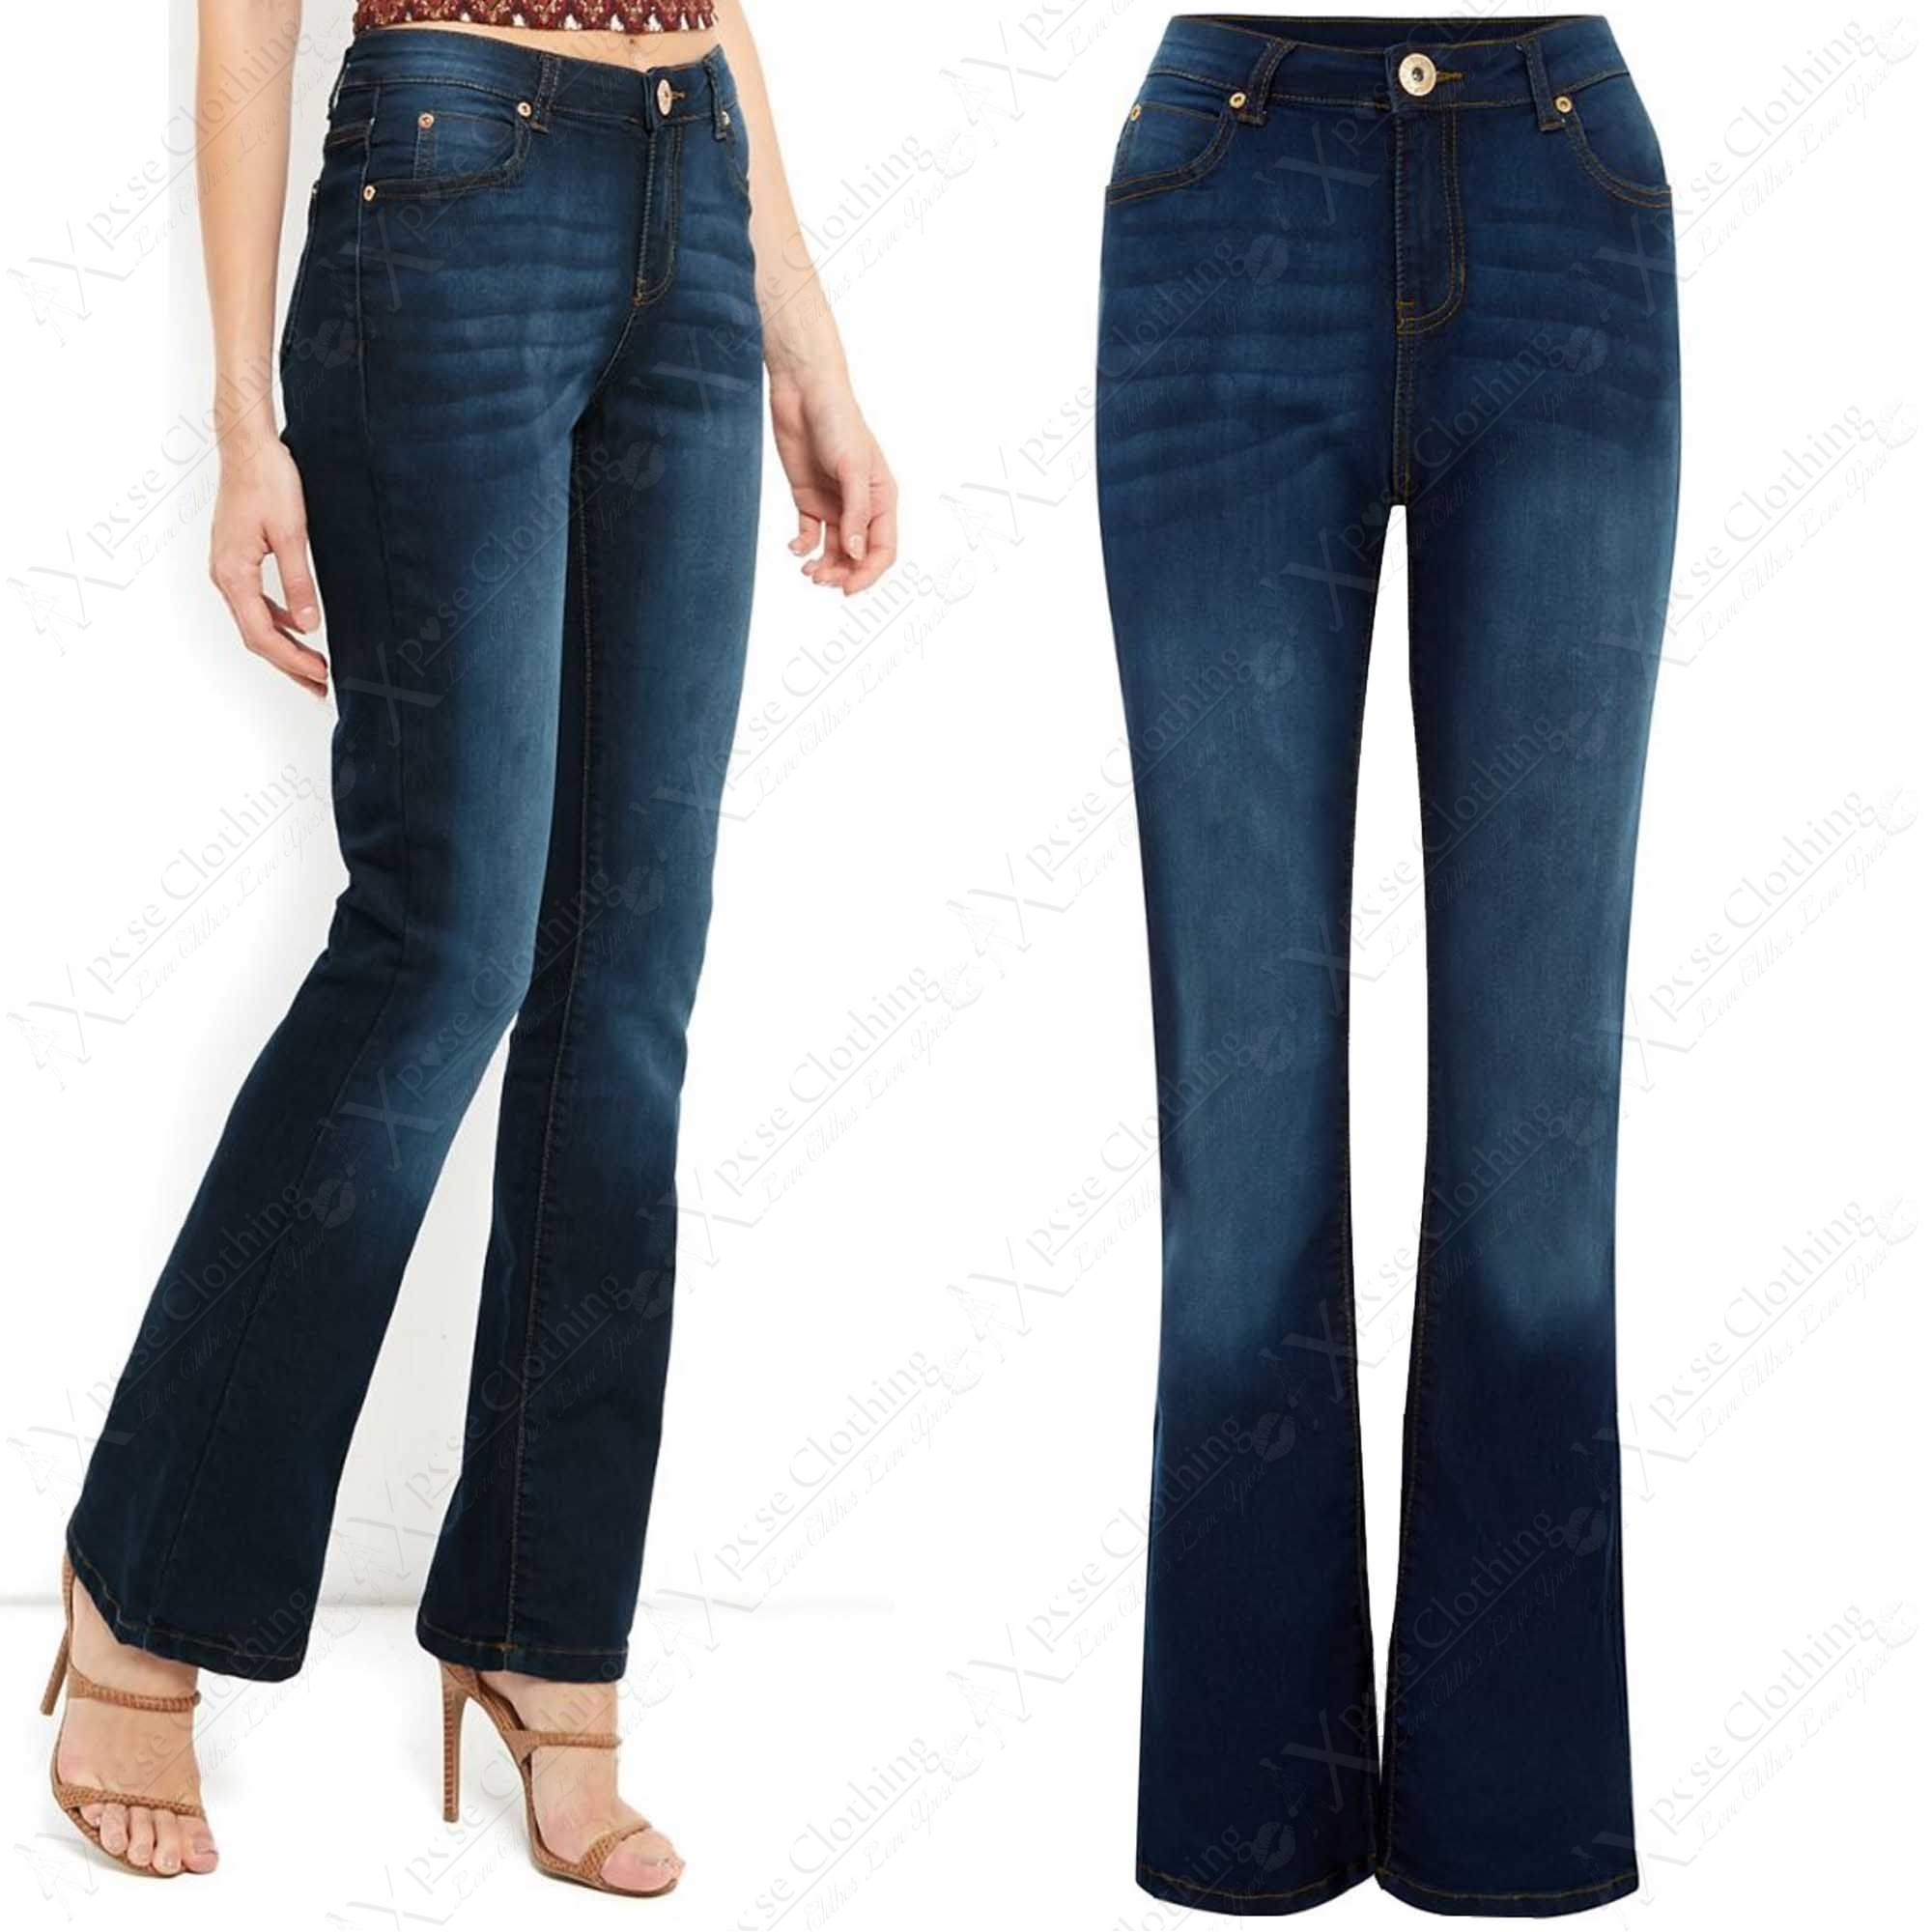 Women's Bootcut Jeans at True Religion feature signature back pockets. Shop True Religion designer bootcut jeans for women in a variety of cuts. True Religion True Religion.